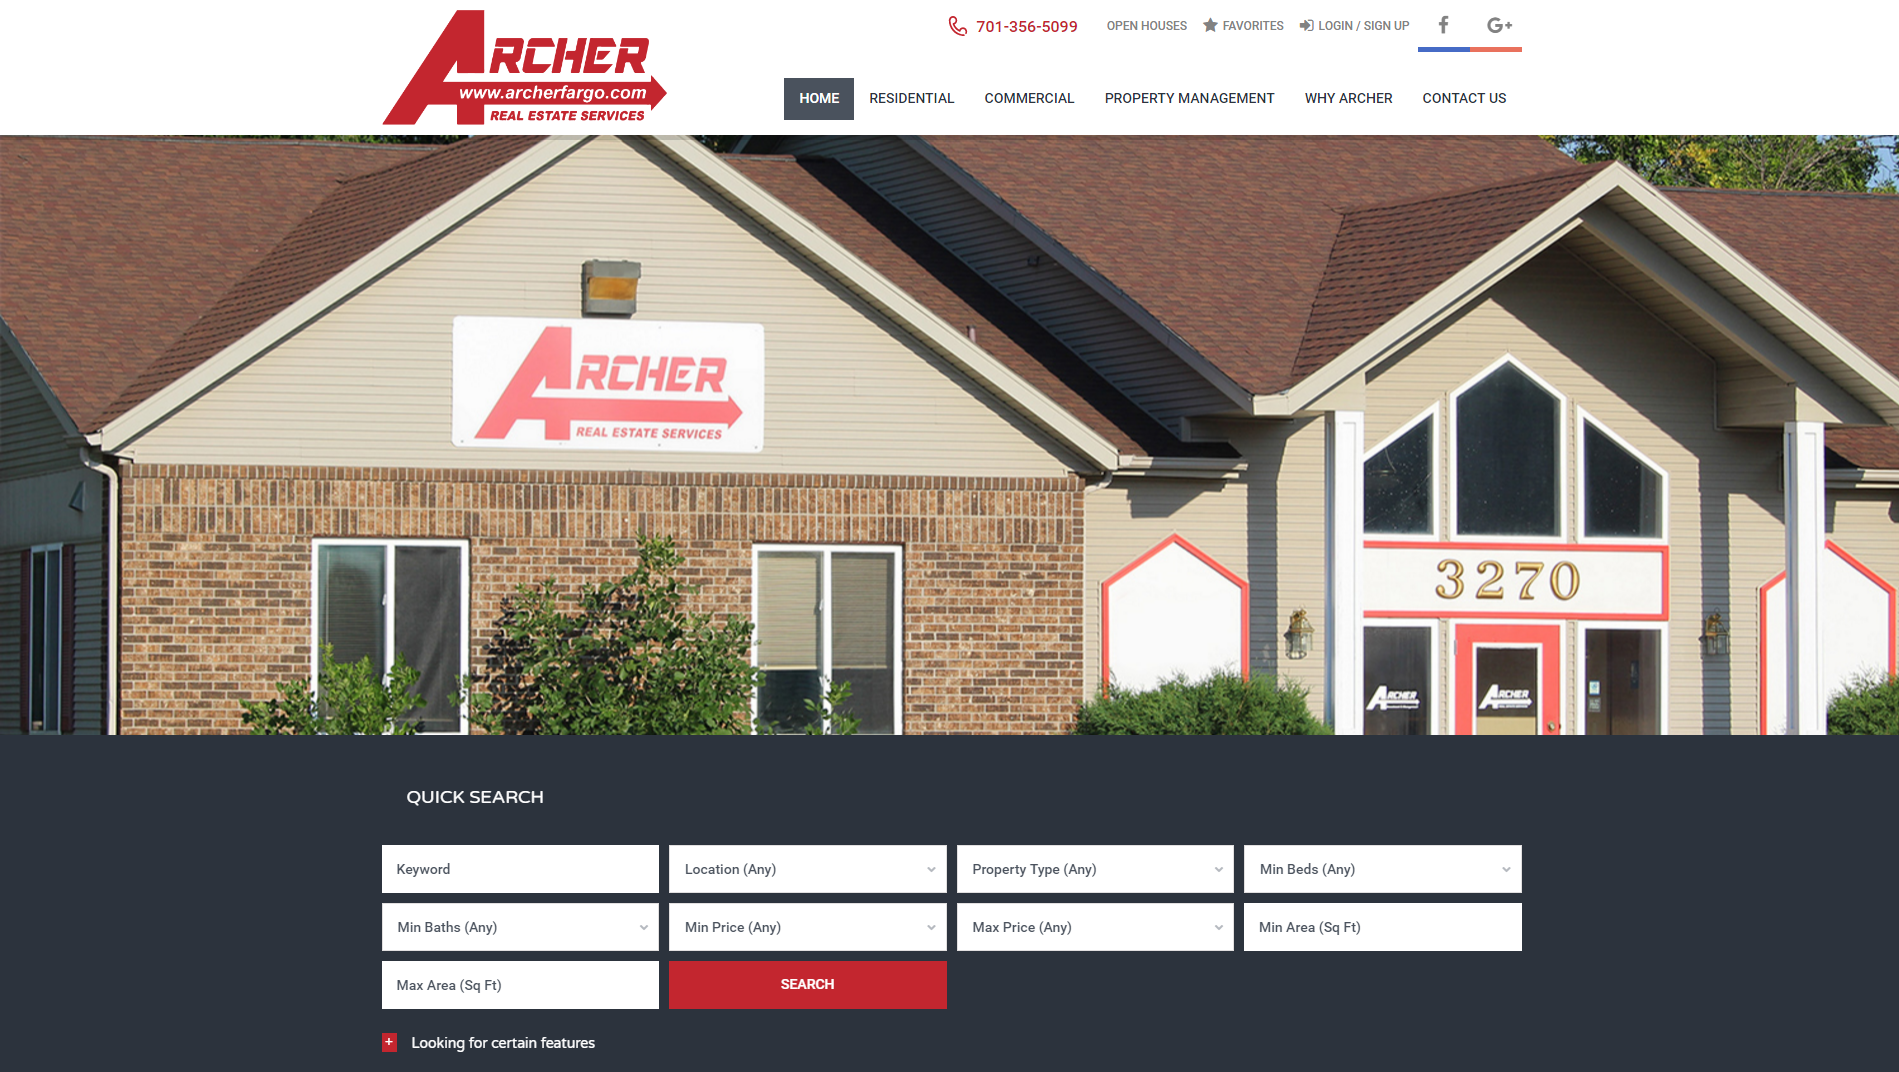 Archer Fargo - Web Design - BNG Design - Fargo ND